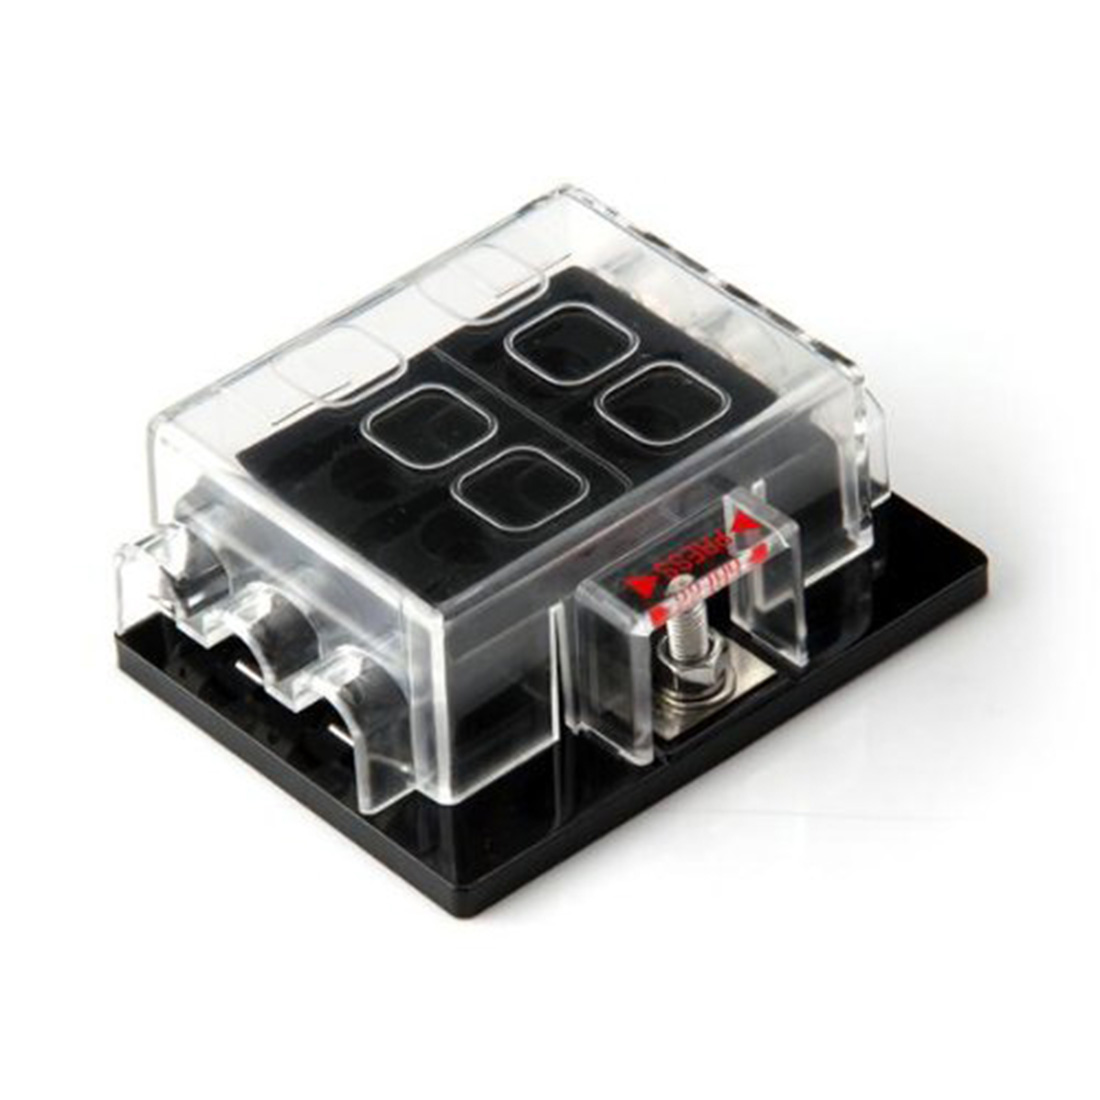 online buy whole blade fuse box from blade fuse box high quality 6 way circuit car truck automotive atc ato blade fuse box holder fuseholder 32v